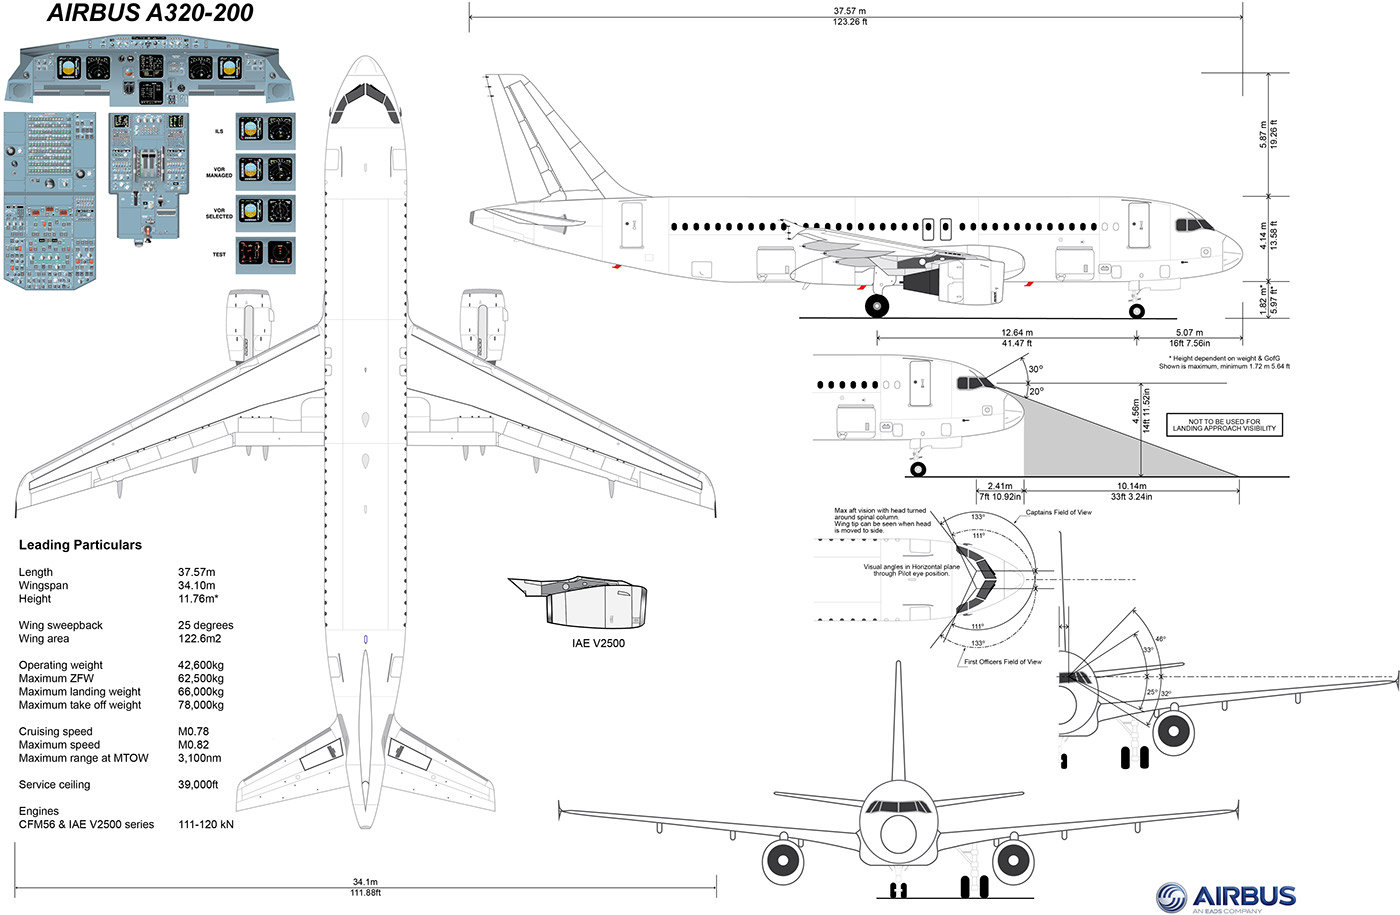 aircraft solutions course project complete (aircraft solutions)  documents similar to se571 course project phase1 donaldsonr  fi504 case study 1 the complete accounting cycle.